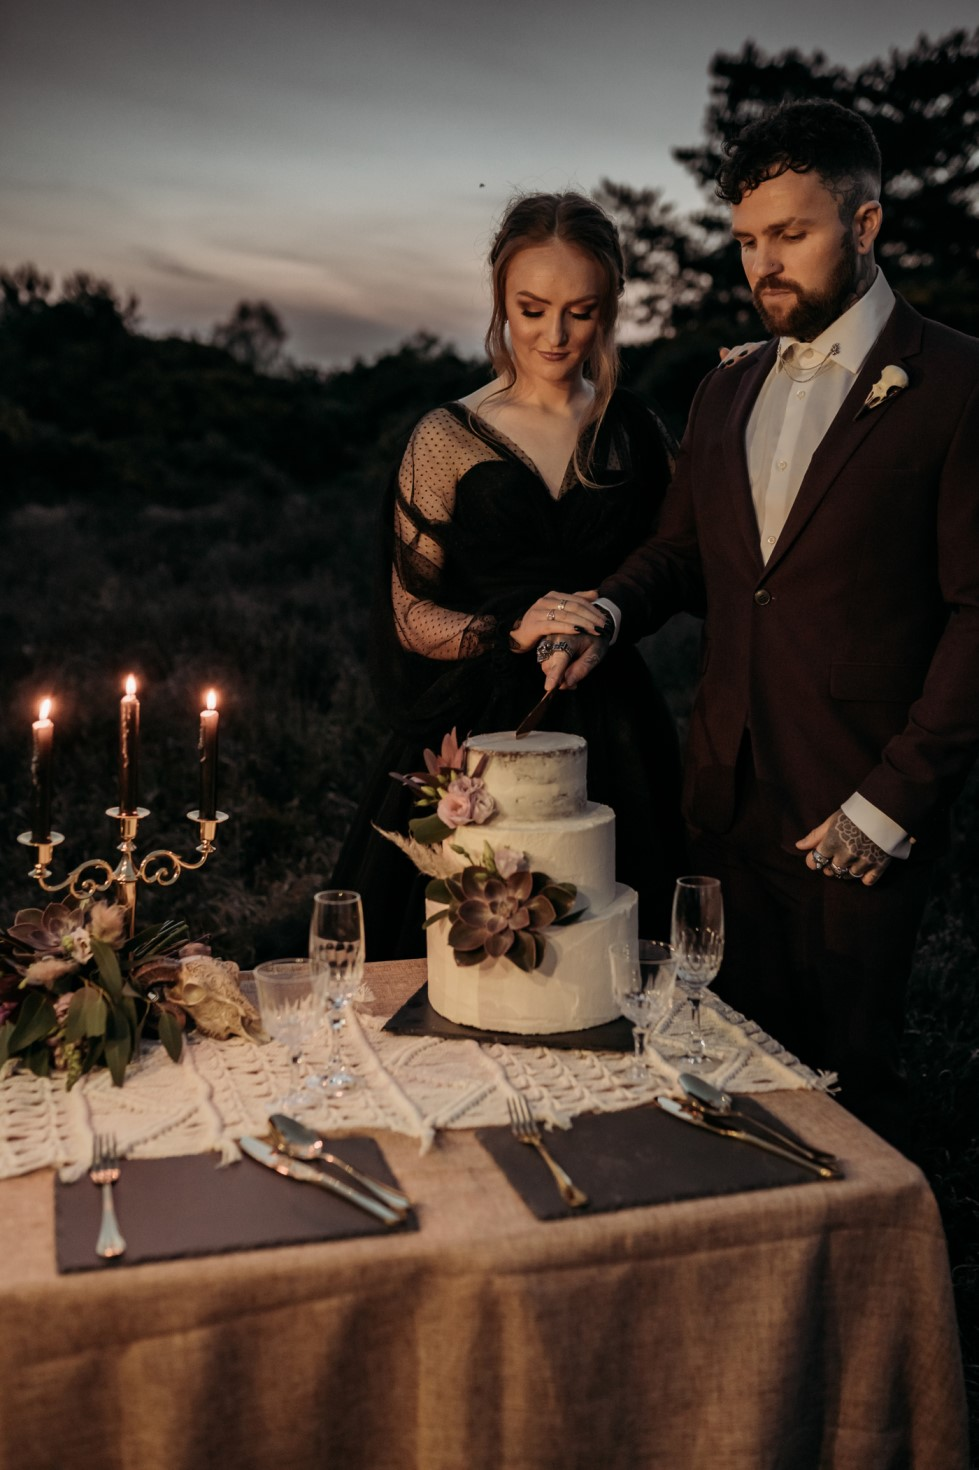 Finn And The Fox Photography-Moody Elopement Wedding- Gothic Wedding-Edgy Wedding- Unique Wedding